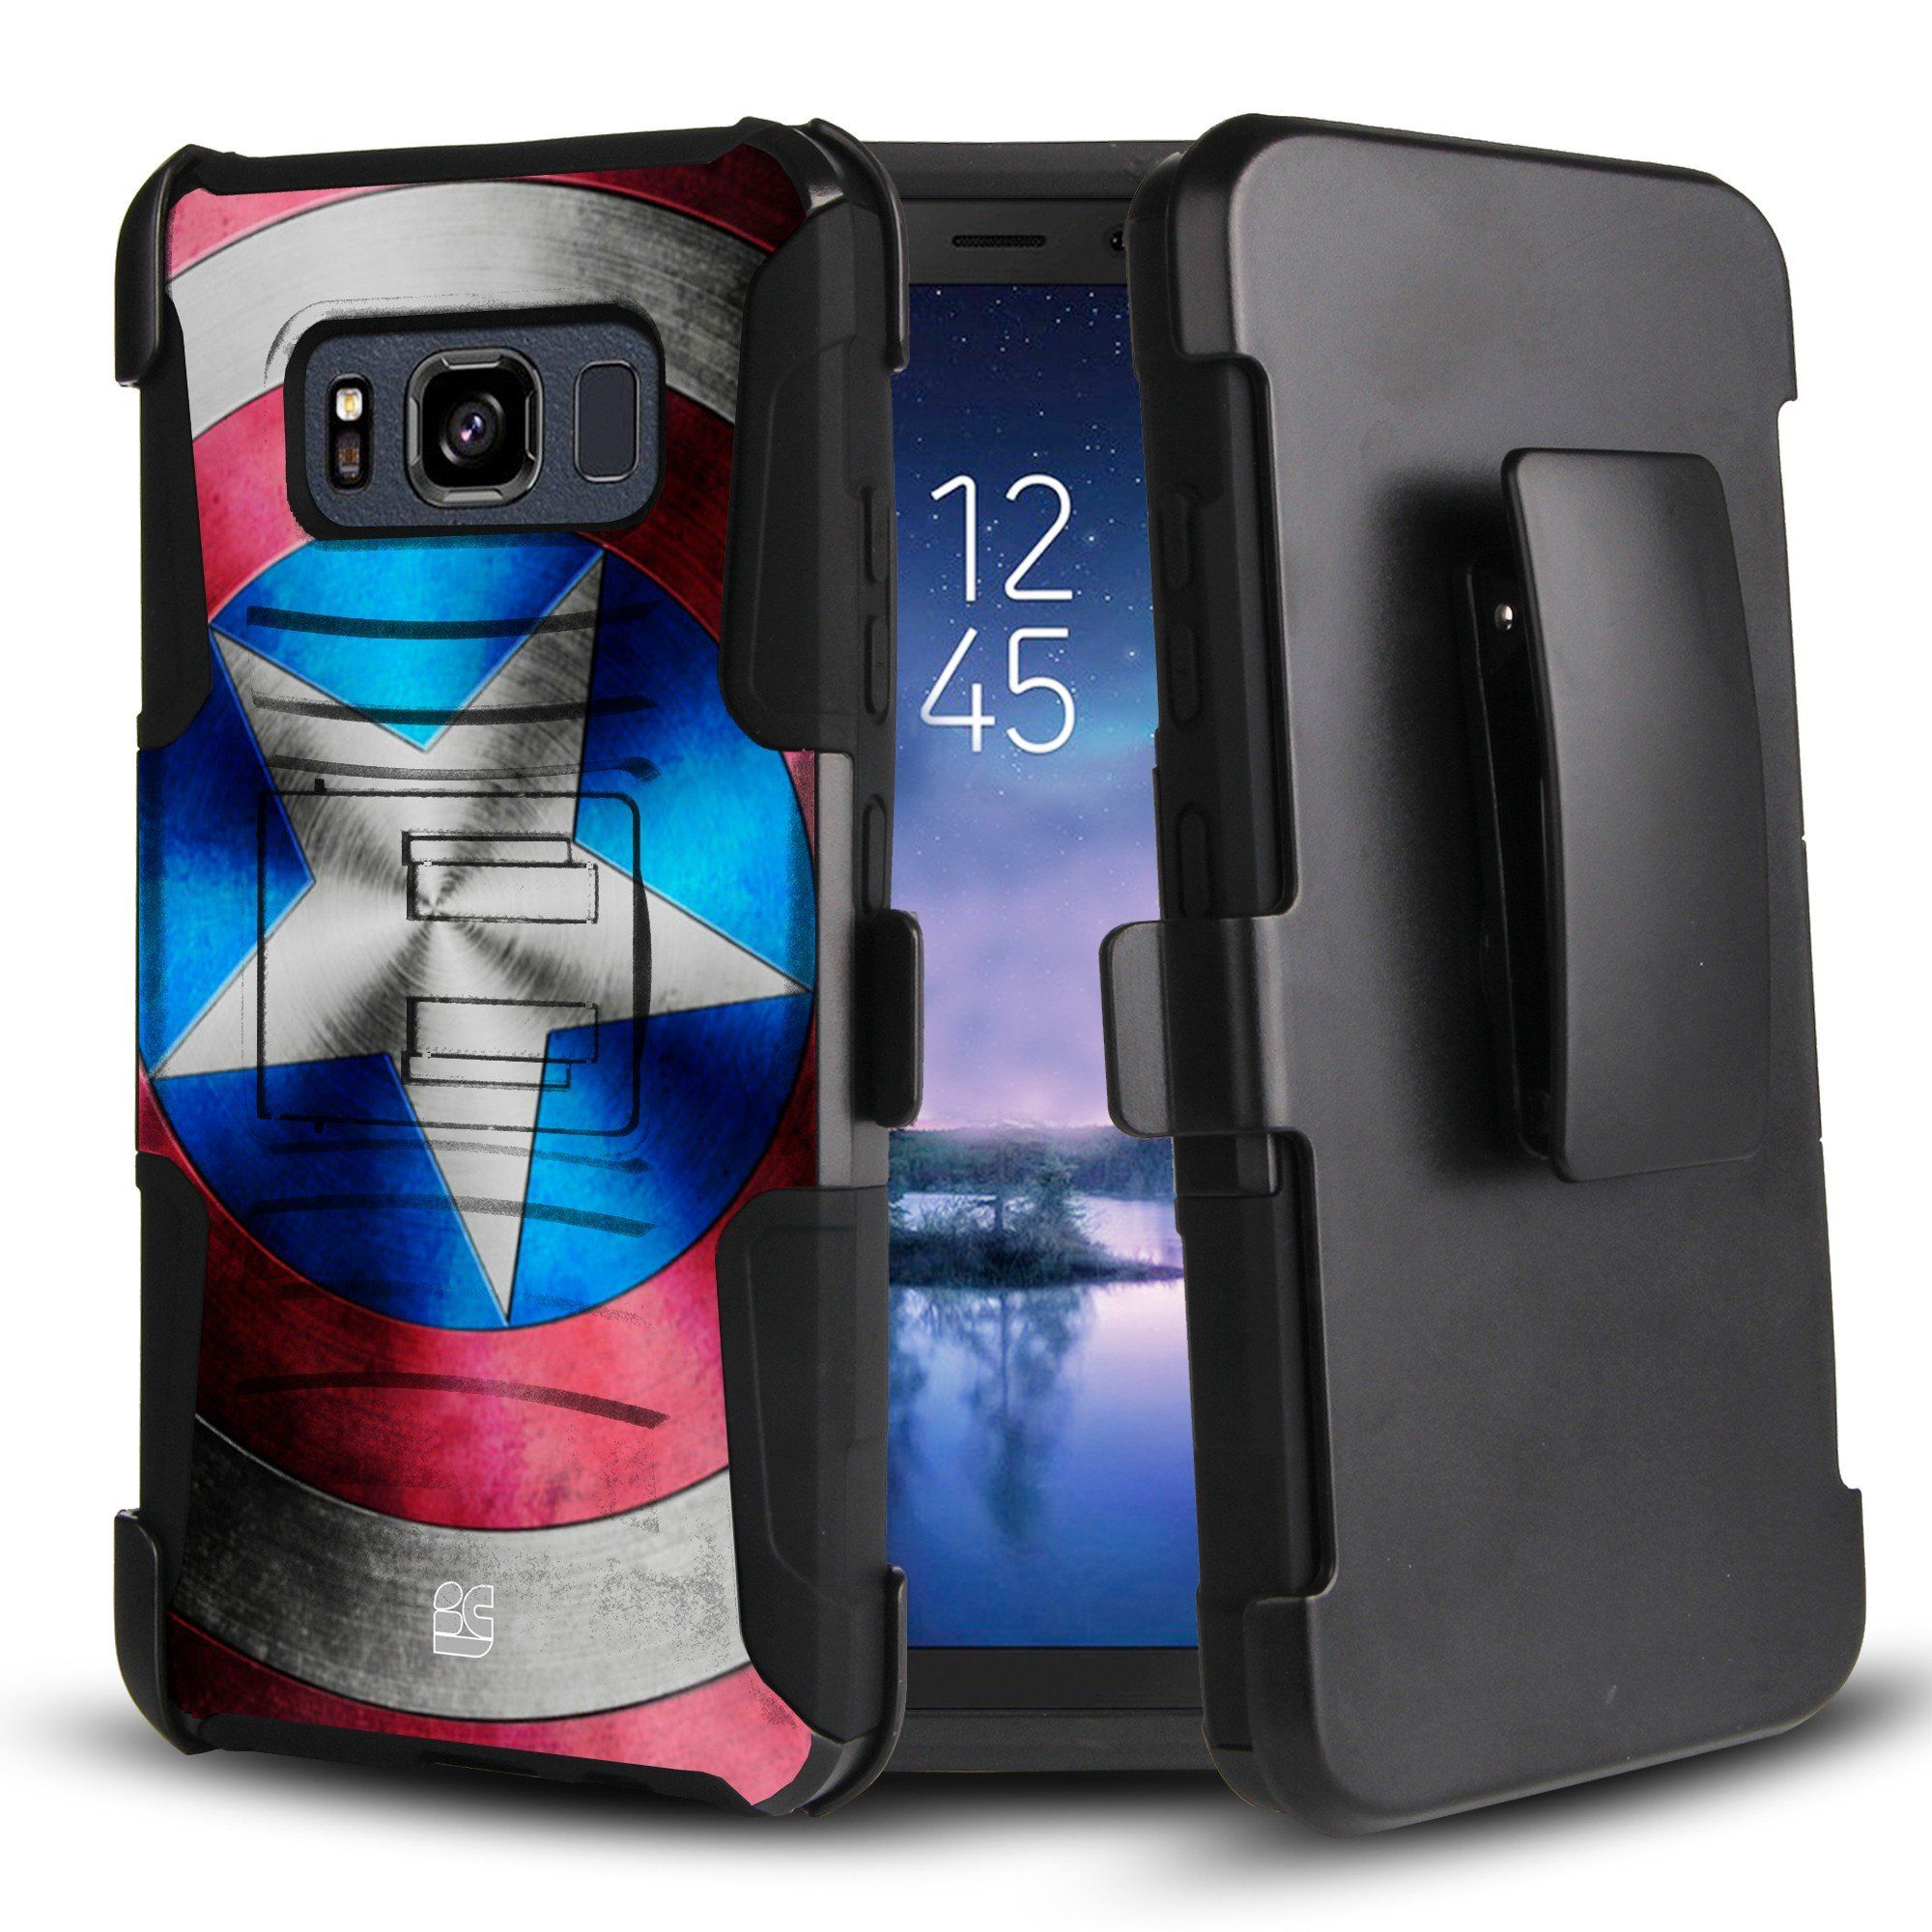 Galaxy S8 Active Case Trishield Gear Durable Hybrid Rugged Armor Spigen For Black Hard Shell Inner Silicone